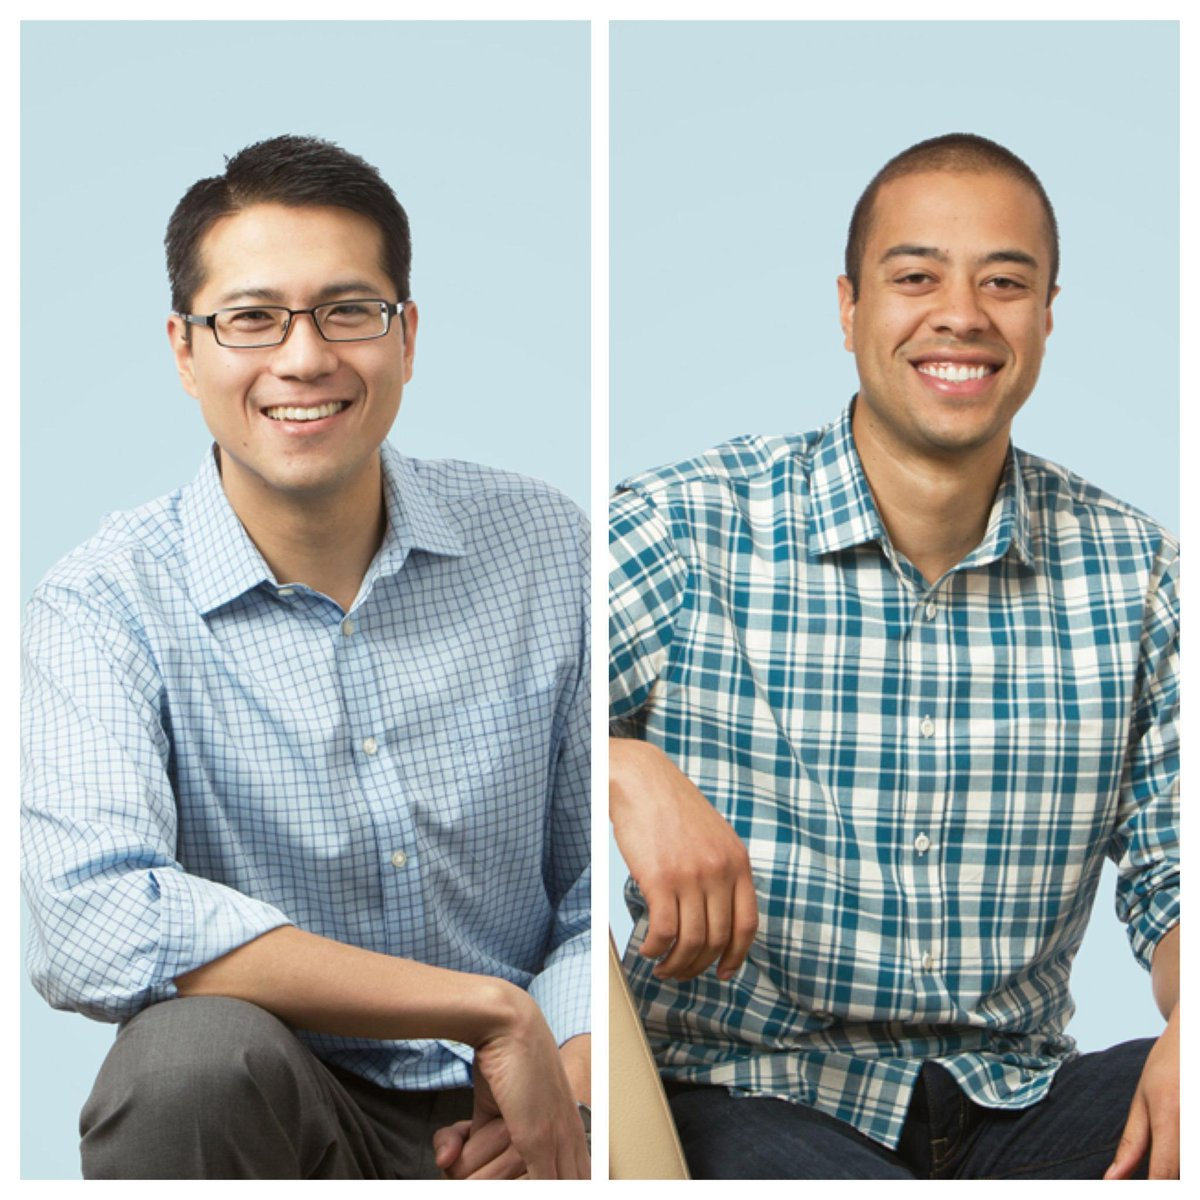 Congratulations to Venrock's Tai-Li Chang and @kerby on their promotions to vice president! http://t.co/69lcvmkCUH